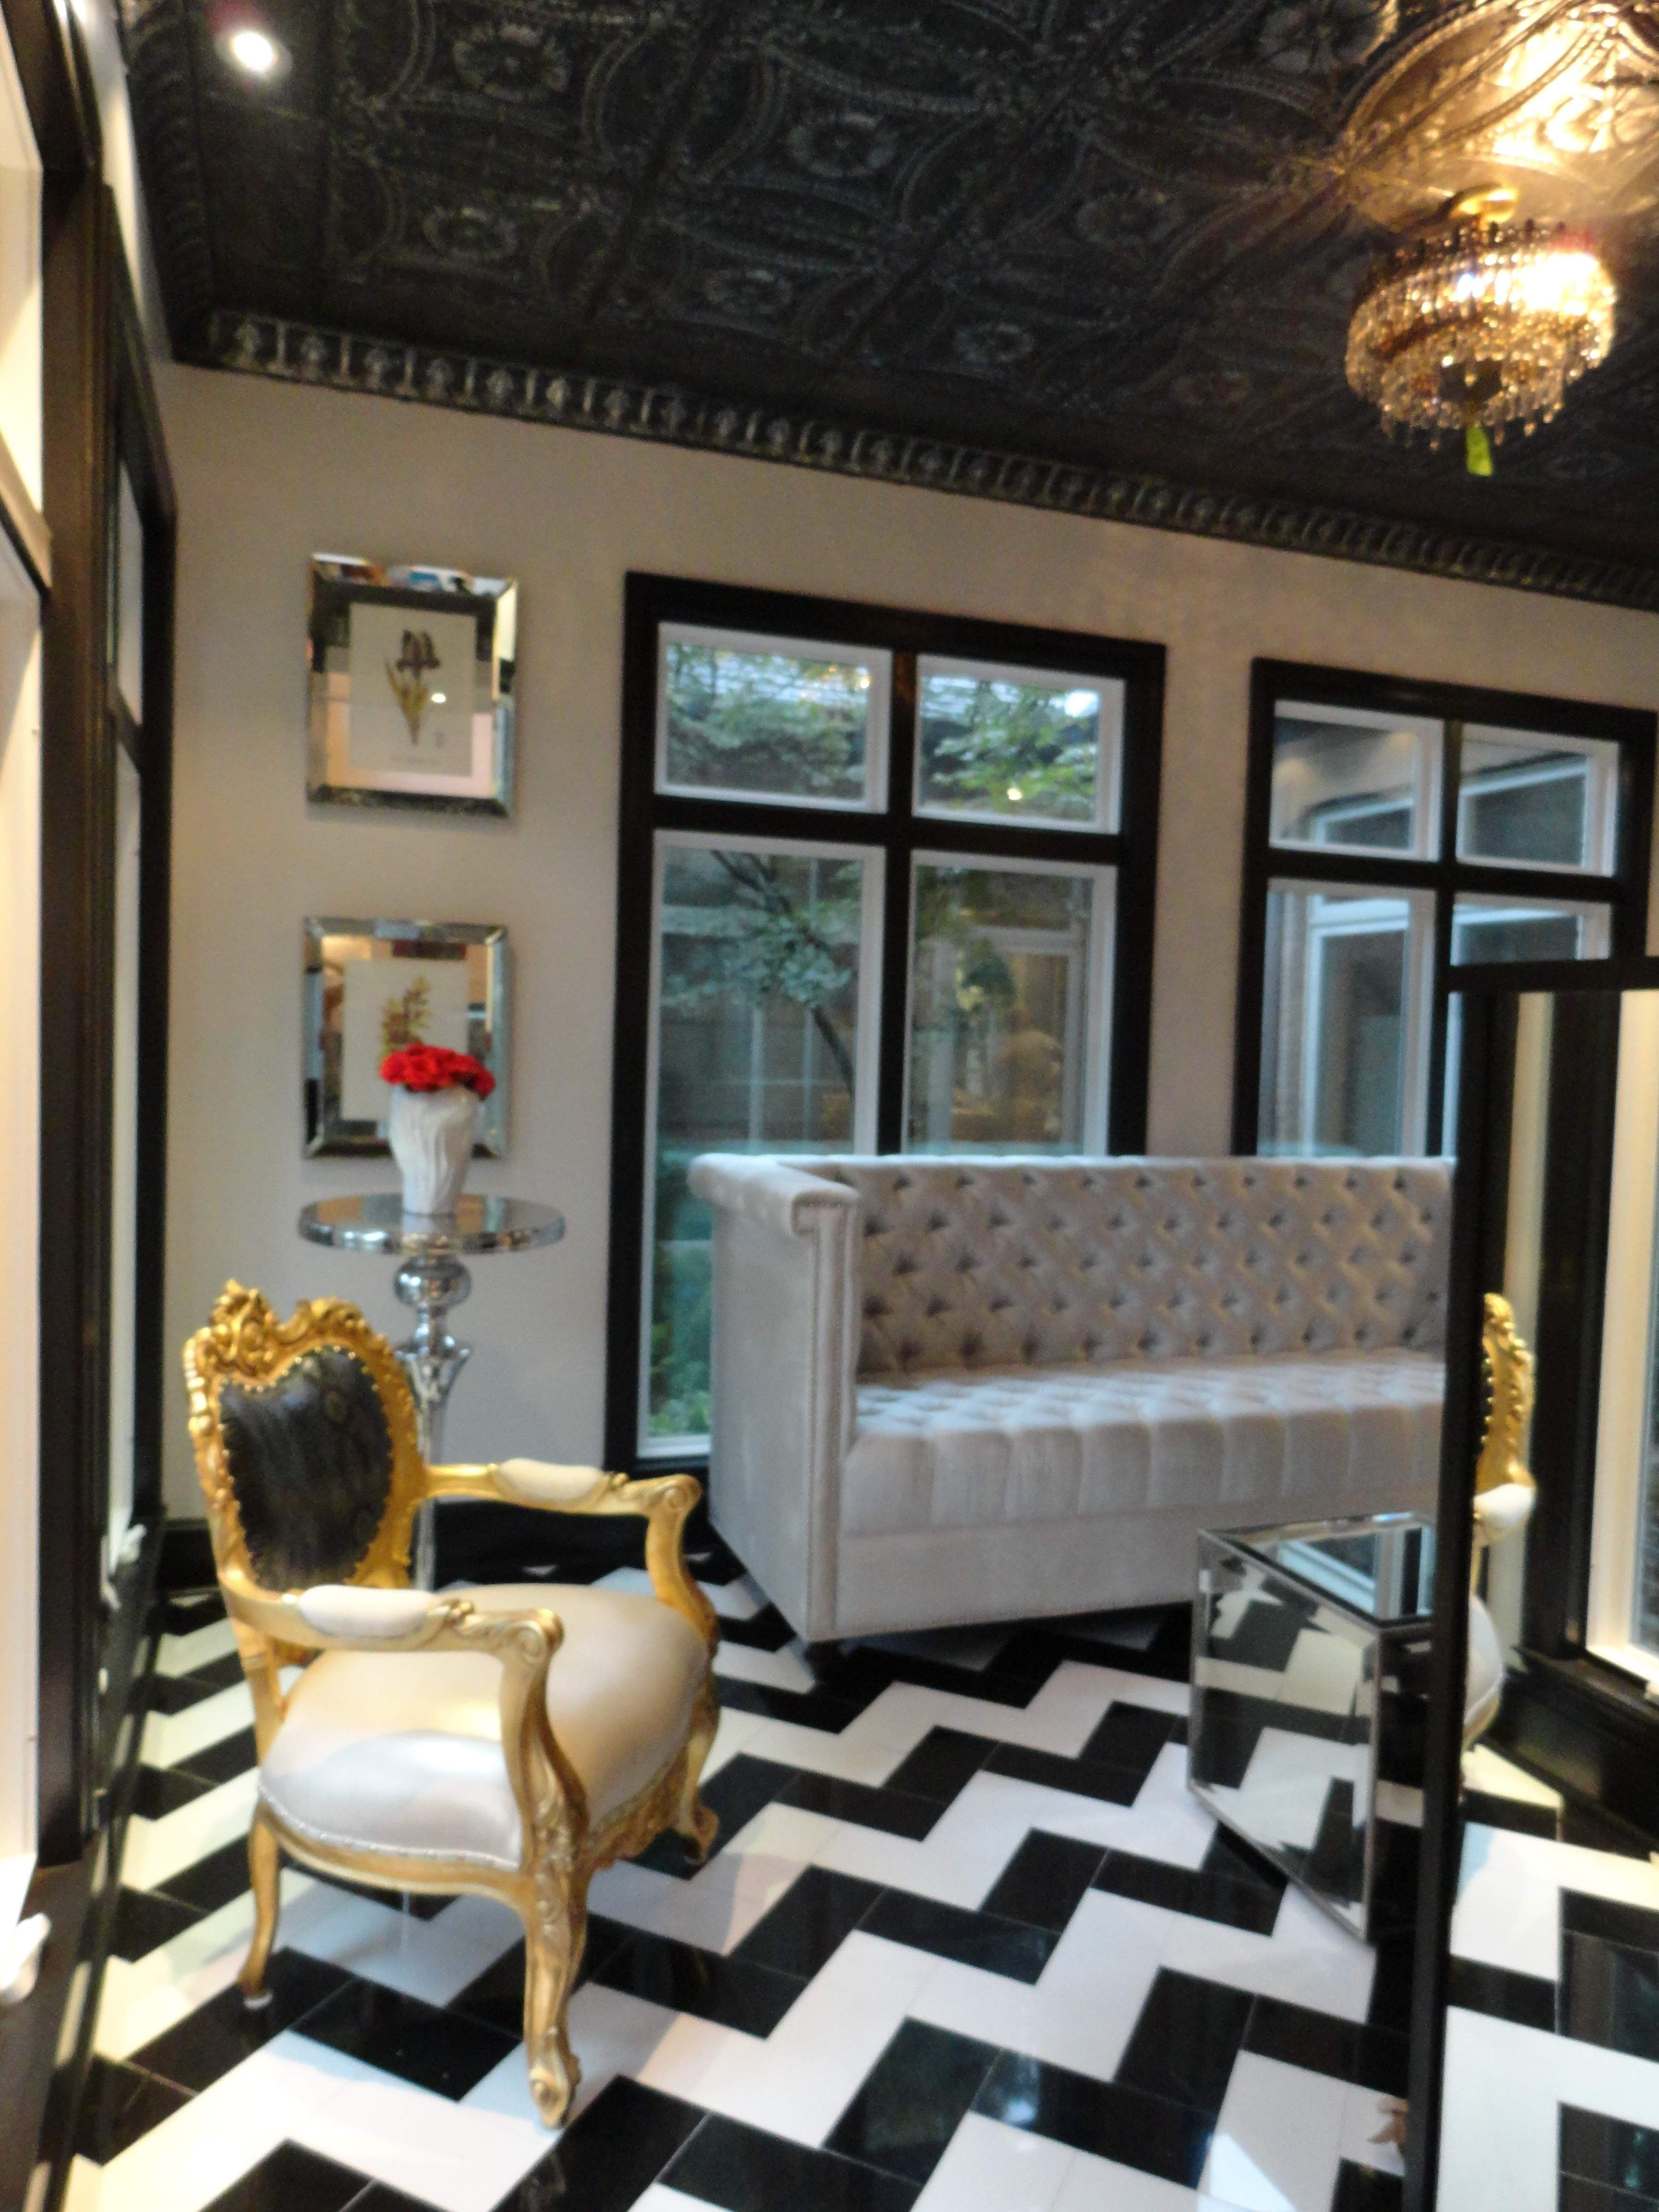 Barque Decor Living Room: Modern Baroque Done Well...one Of My Fave Styles